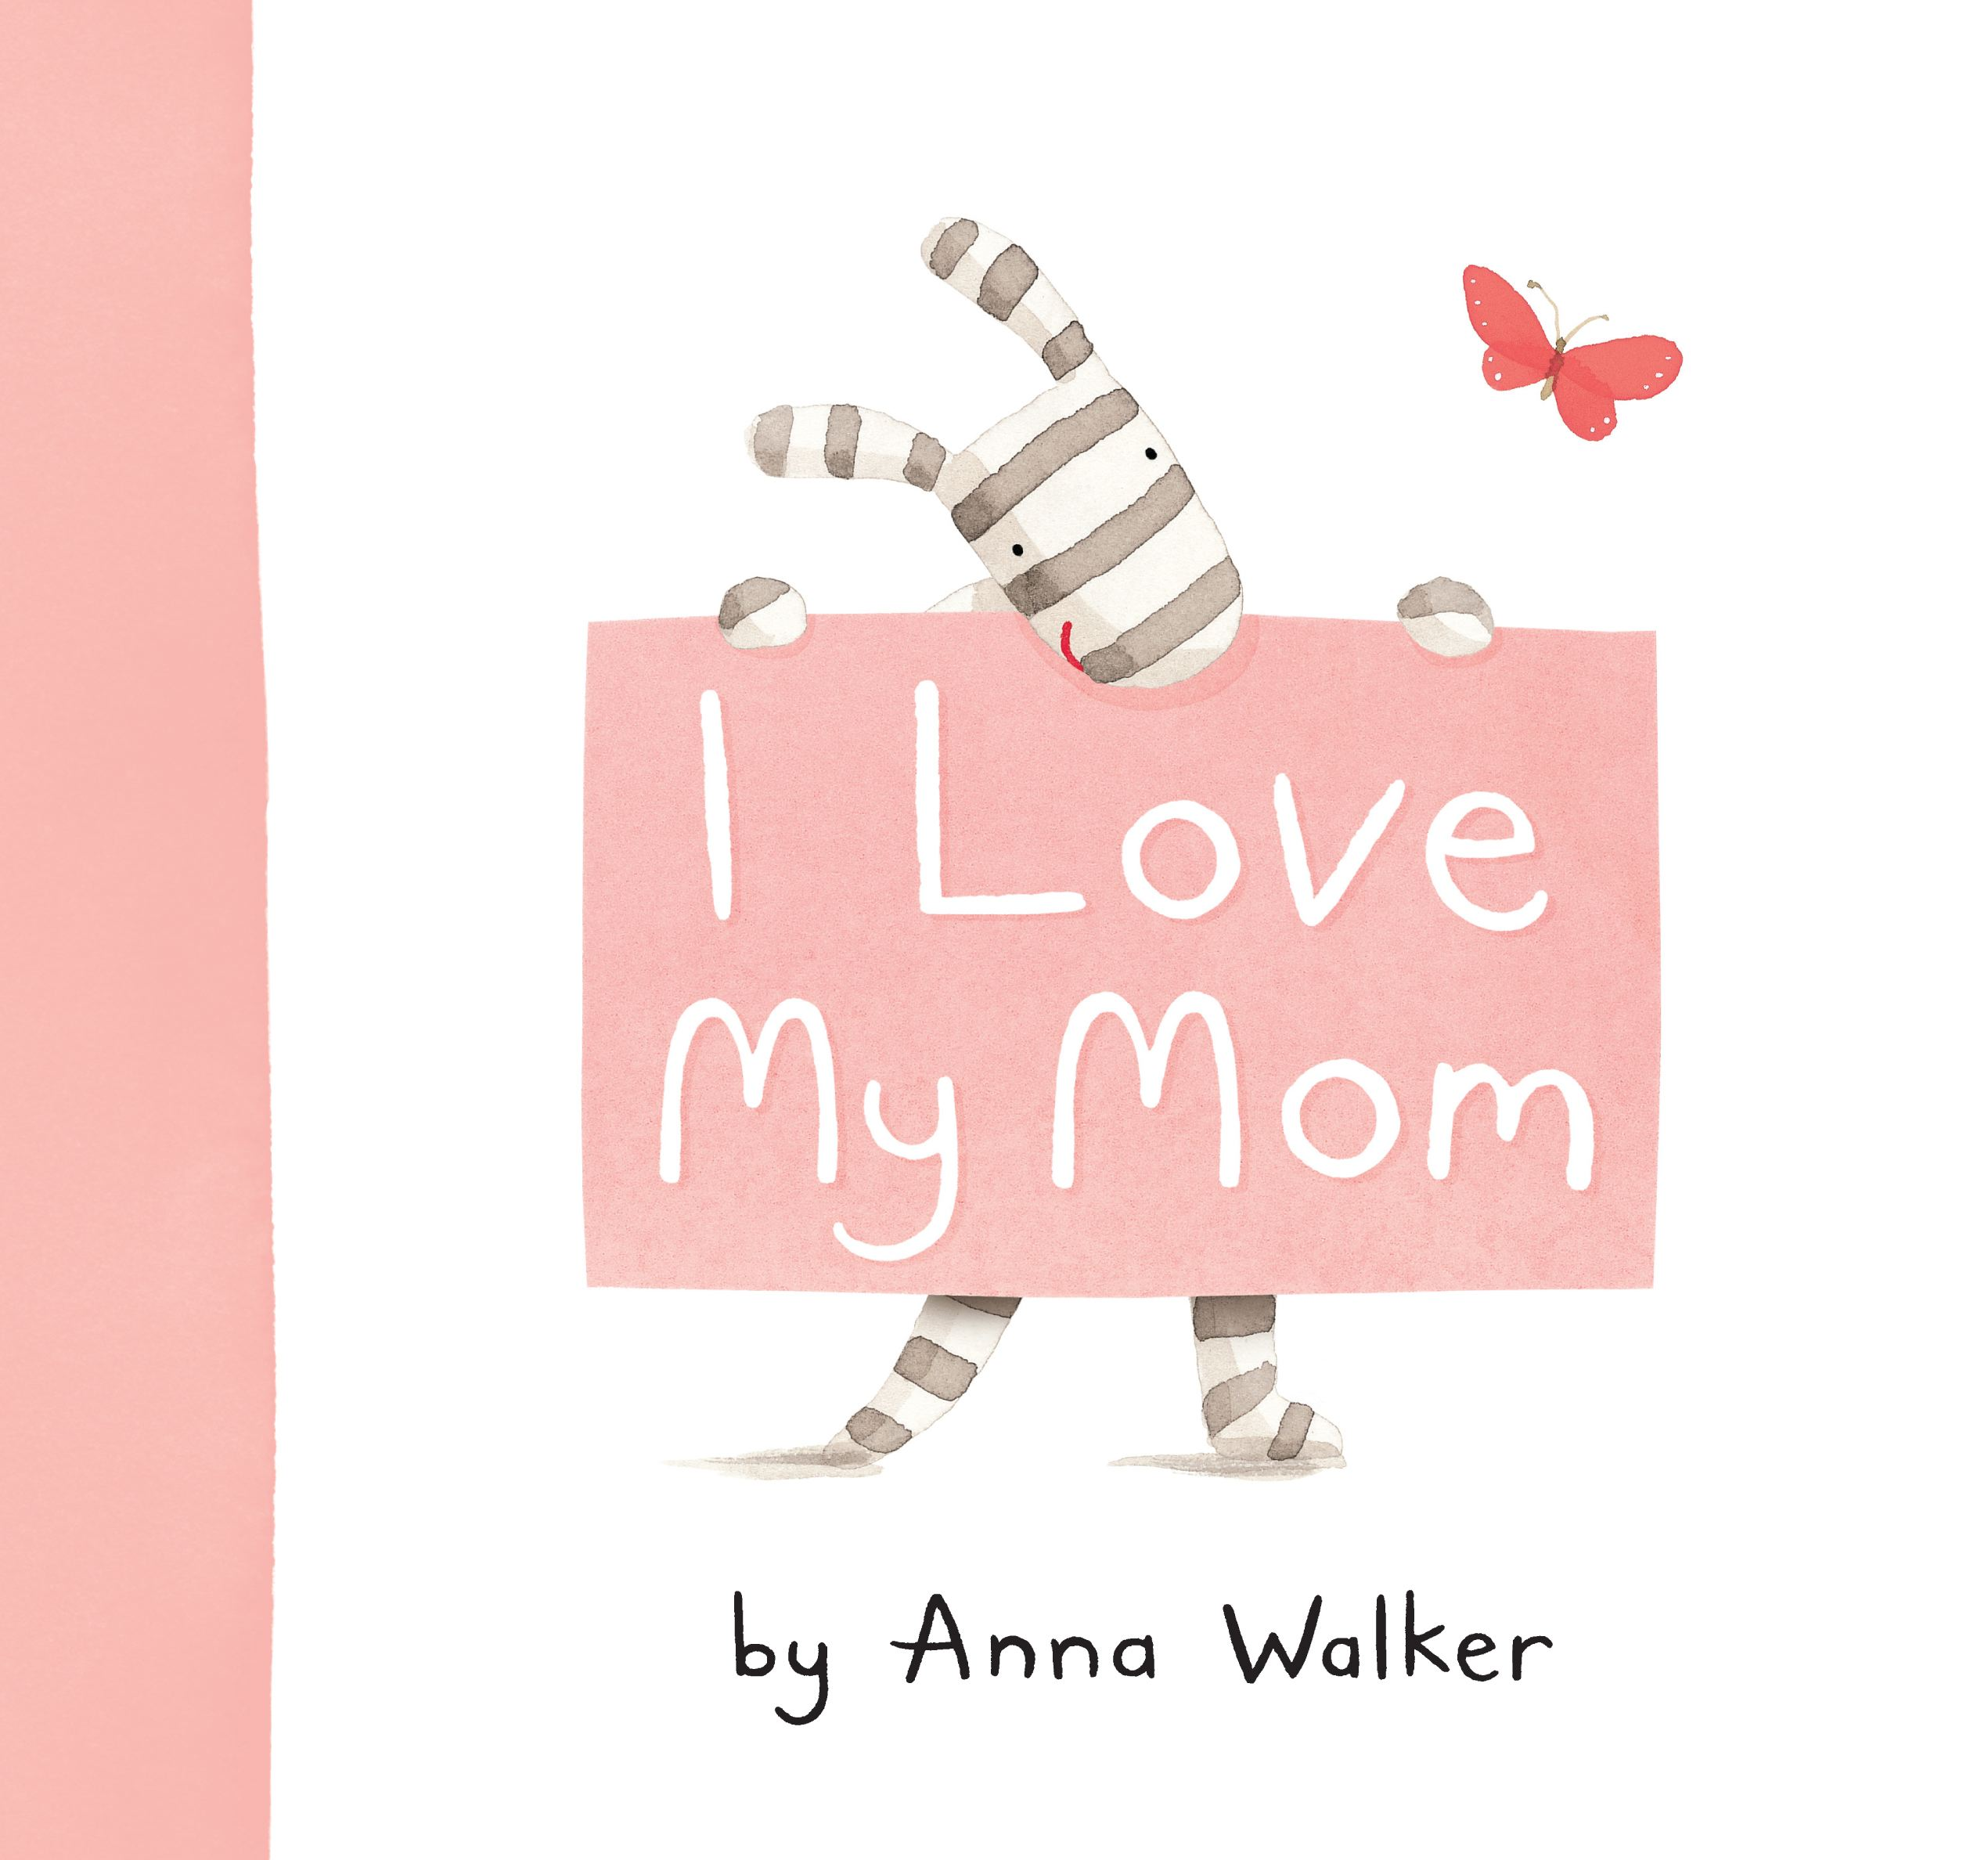 I love my mom book by anna walker official publisher page i love my mom 9781416983187 hr altavistaventures Choice Image